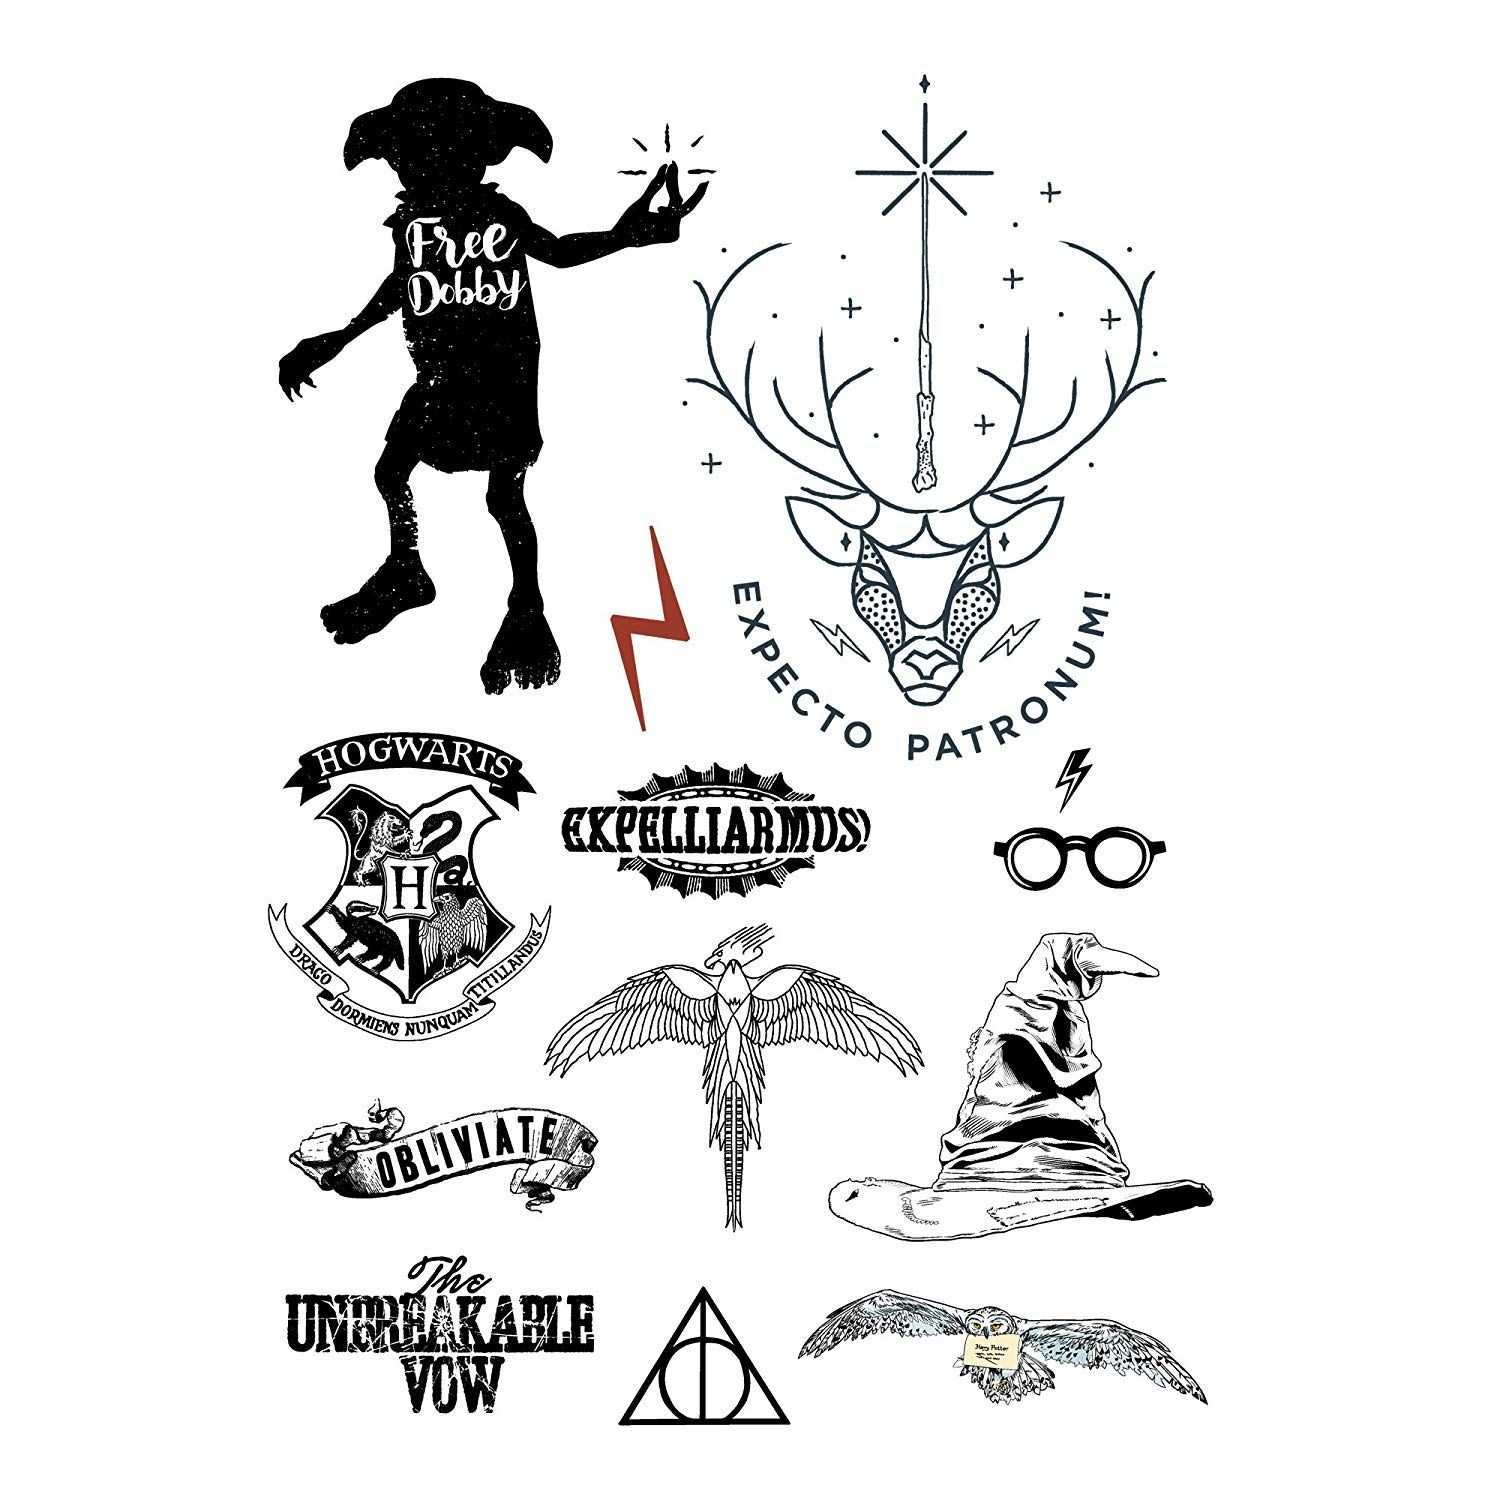 Harry Potter Tattoos Temporary Idea Styles Offizielle Tattoo Cinerepl Tatu S Kadrami Iz Garri Pottera Simvoly Garri Pottera Tatuirovki S Garri Potterom